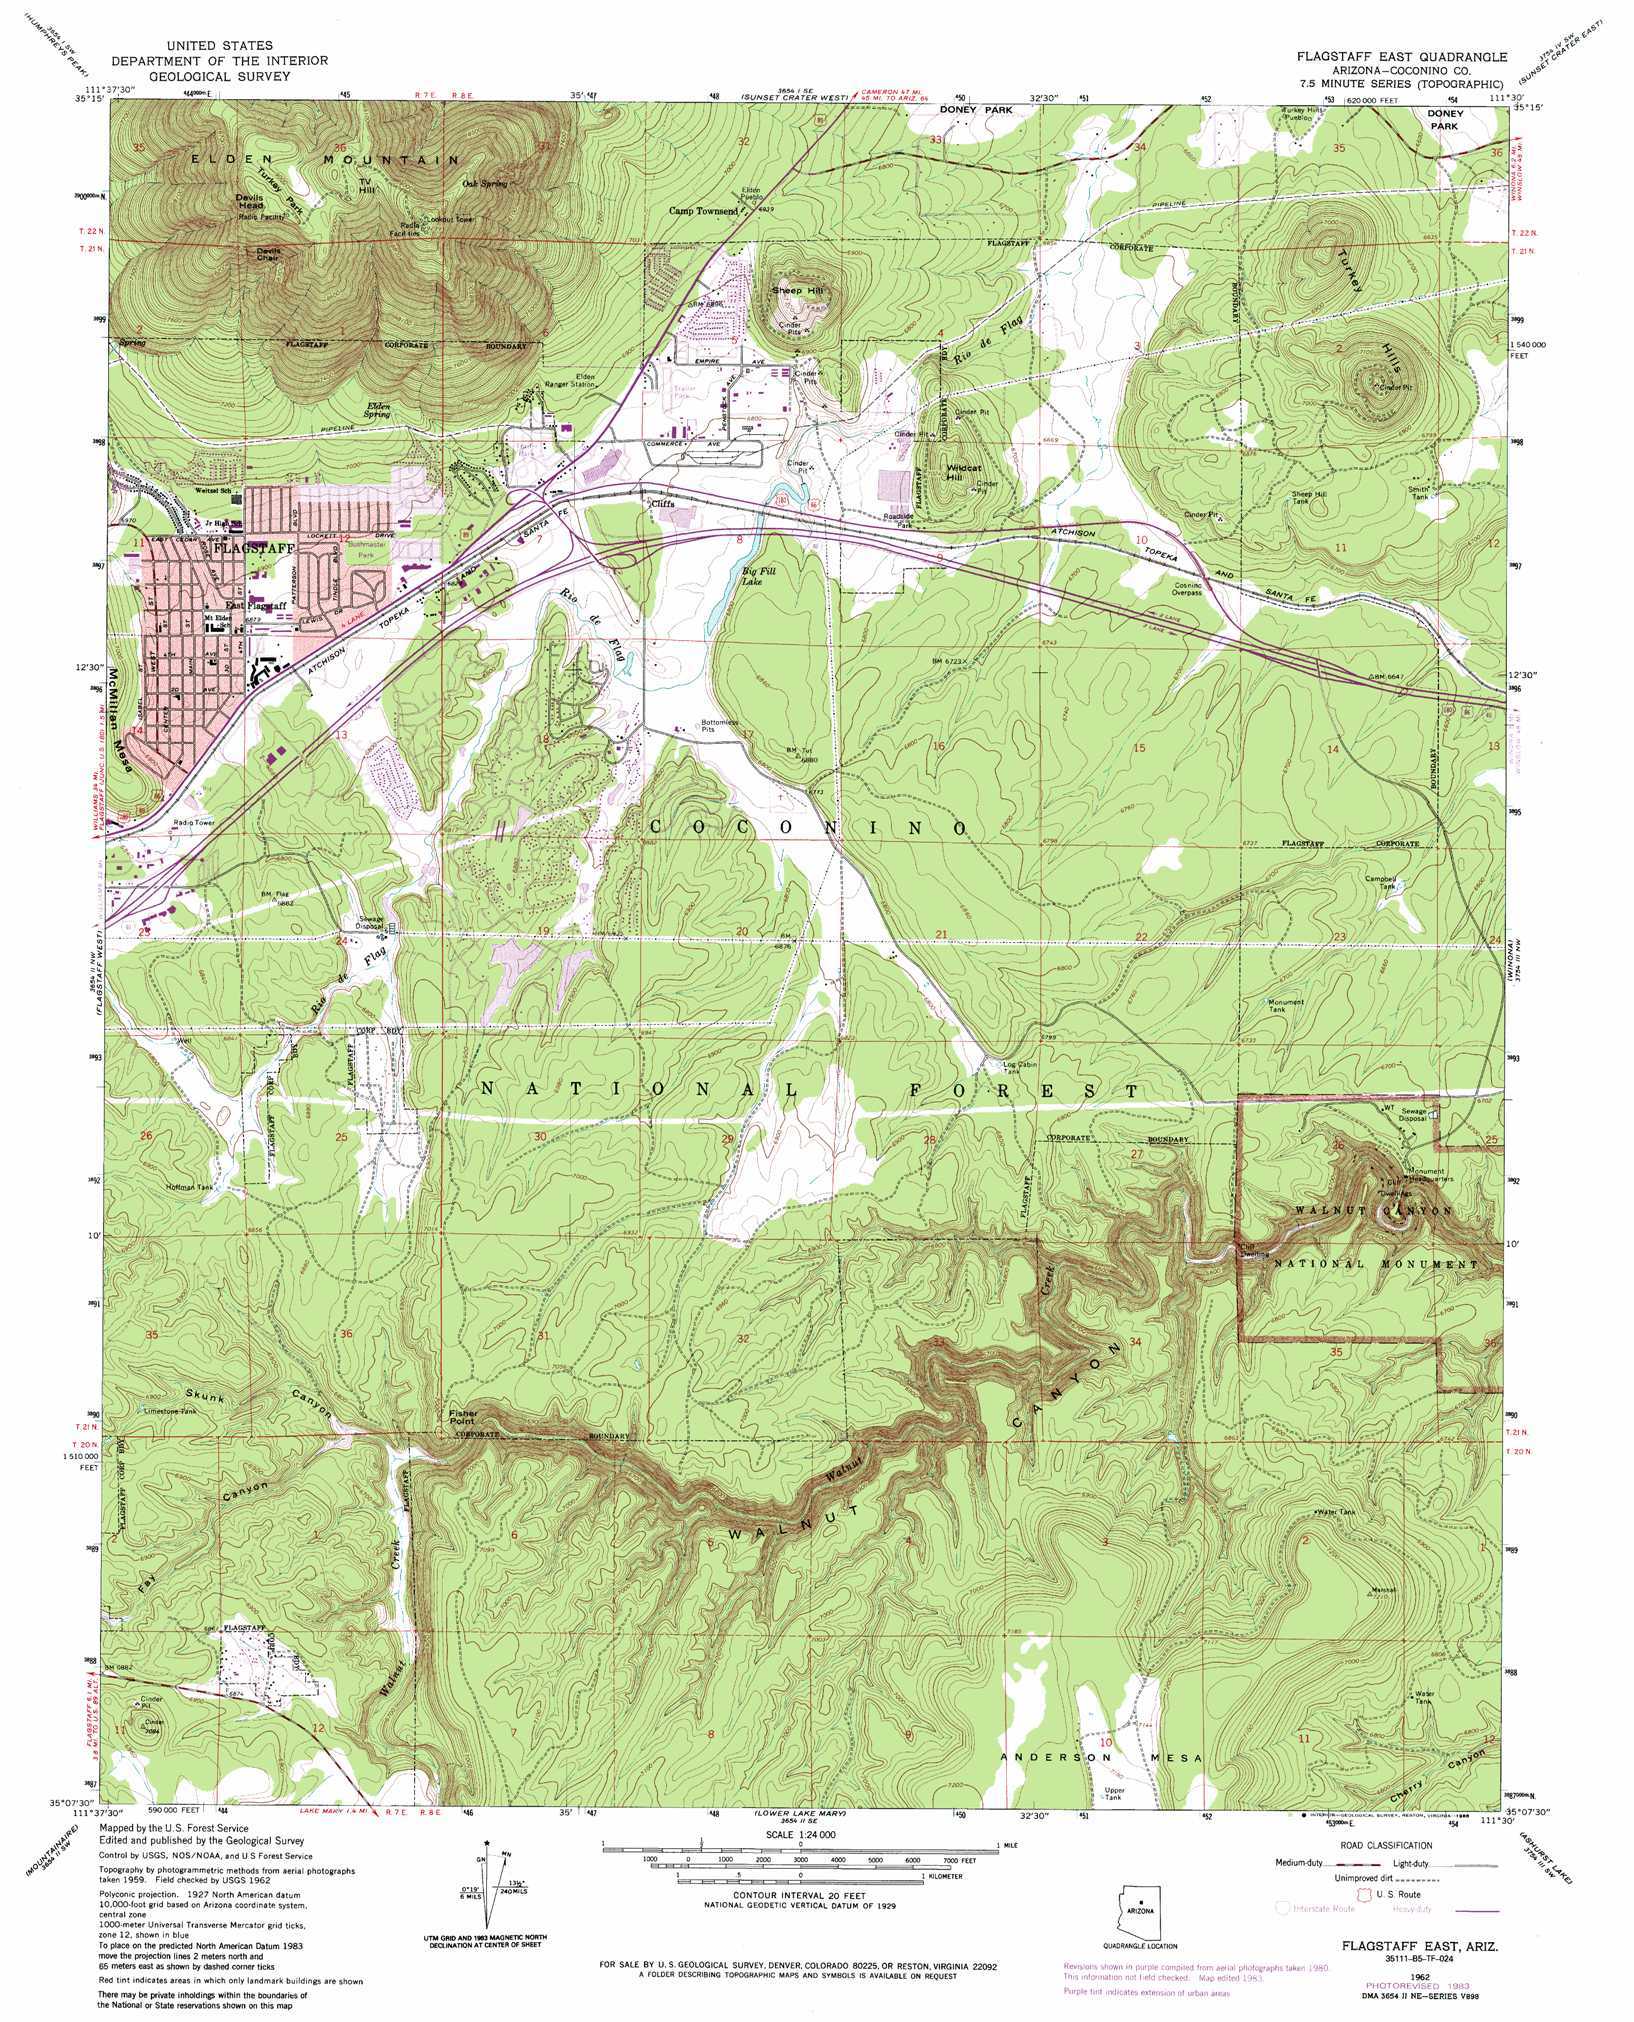 Flagstaff East Topographic Map AZ USGS Topo Quad B - Where is the sheet number on a map found